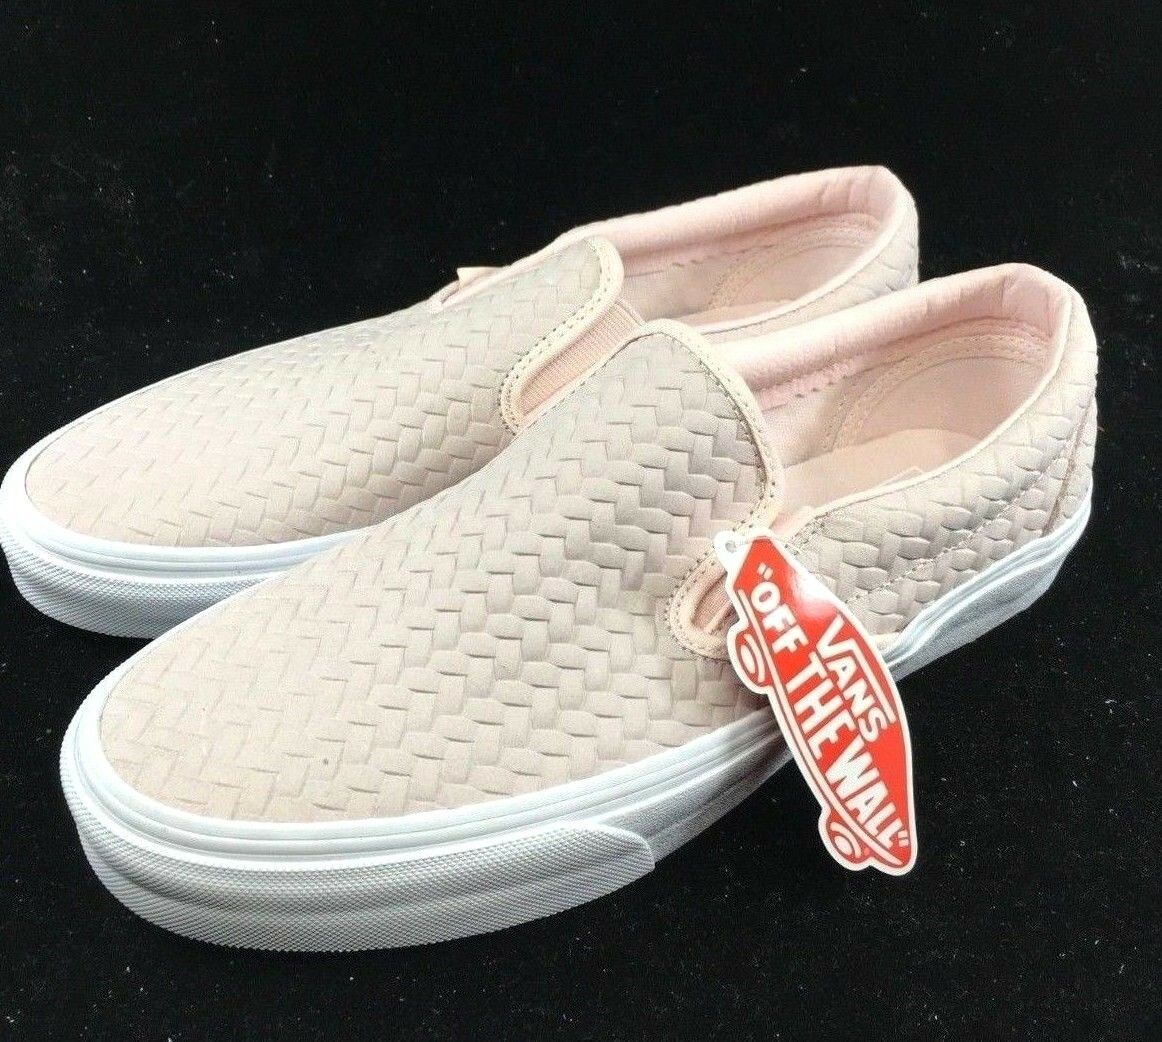 Vans Classic Slip On Embossed Woven Suede pinkwater Pink White VN0A38F7NSQ Vault